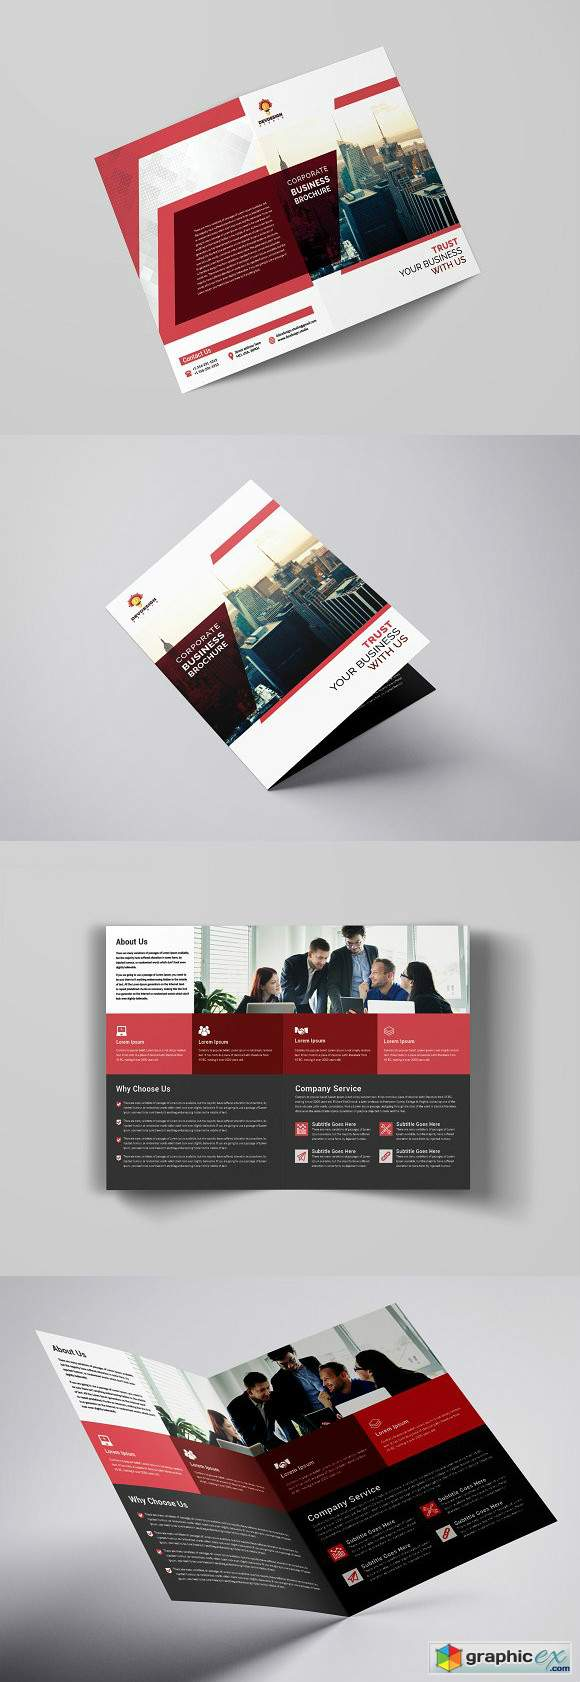 Creative Corporate Brochure Design 3217432